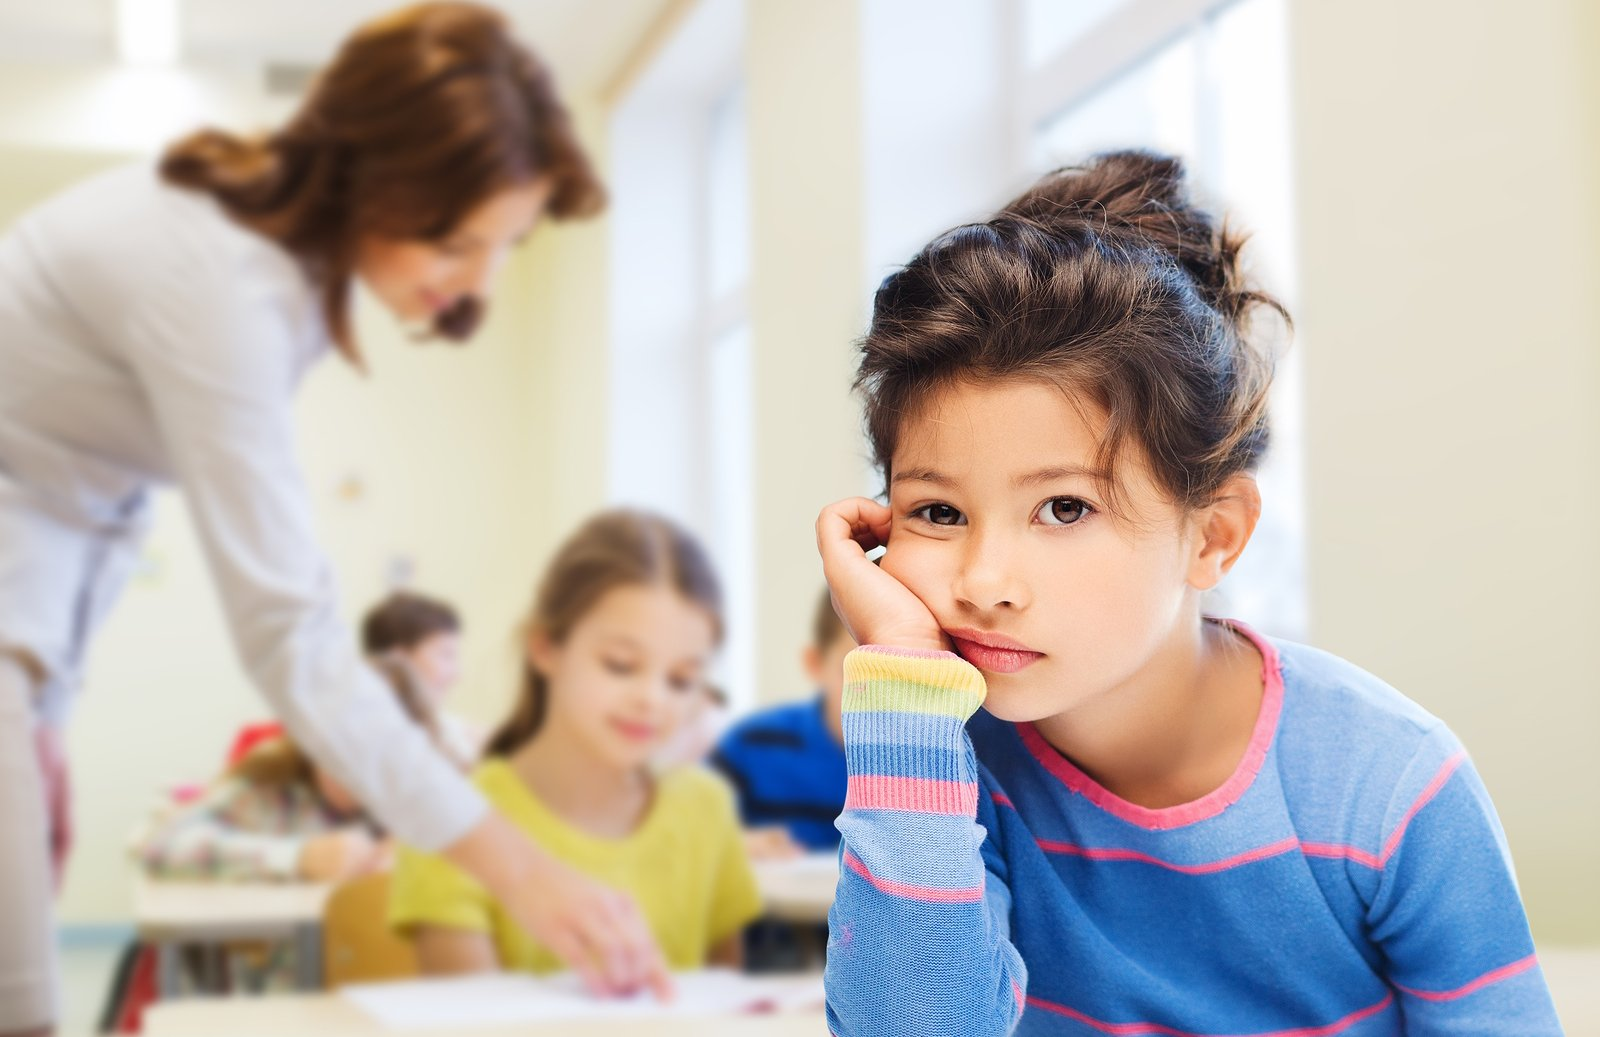 girl looking bored at school